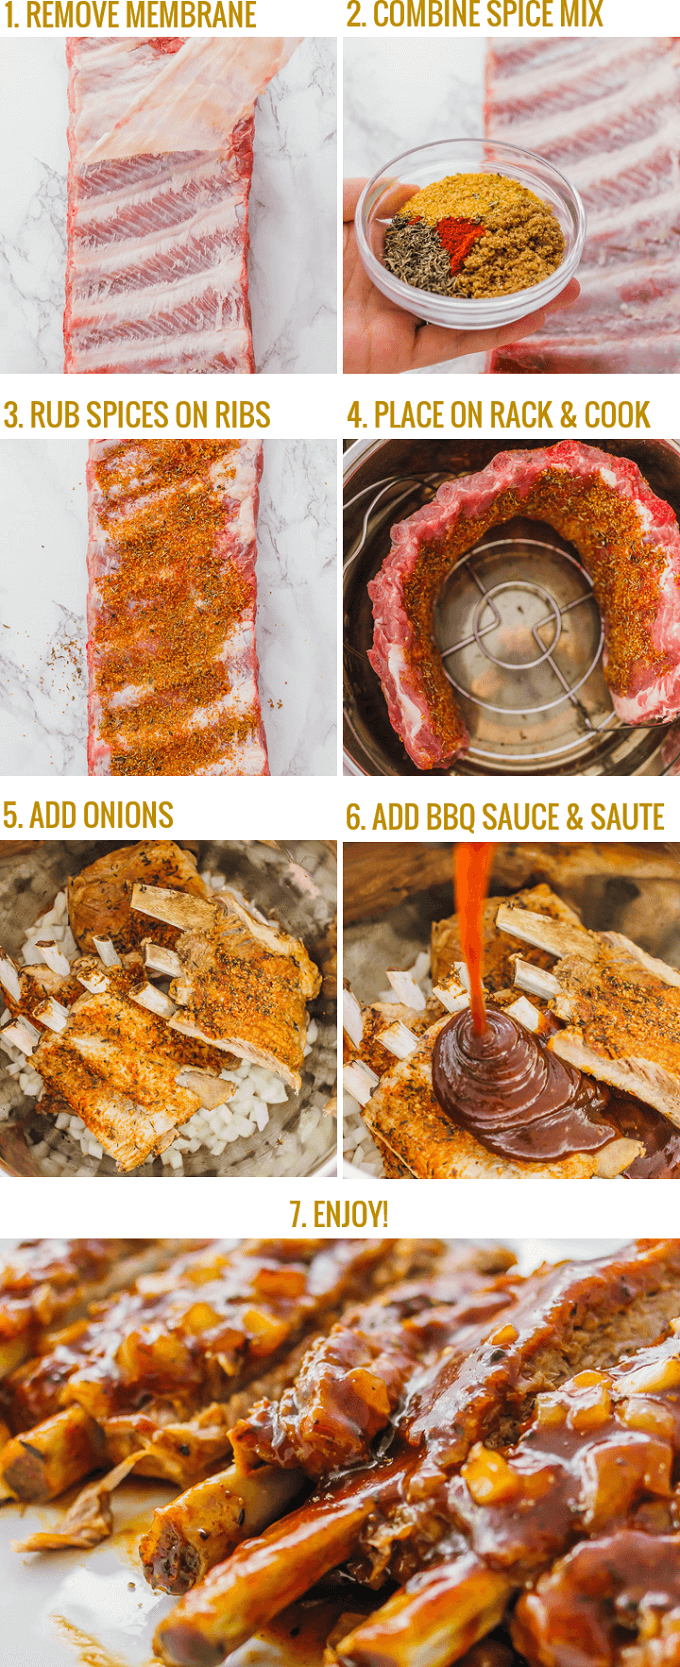 Step by step collage showing how to prepare and cook instant pot bbq ribs